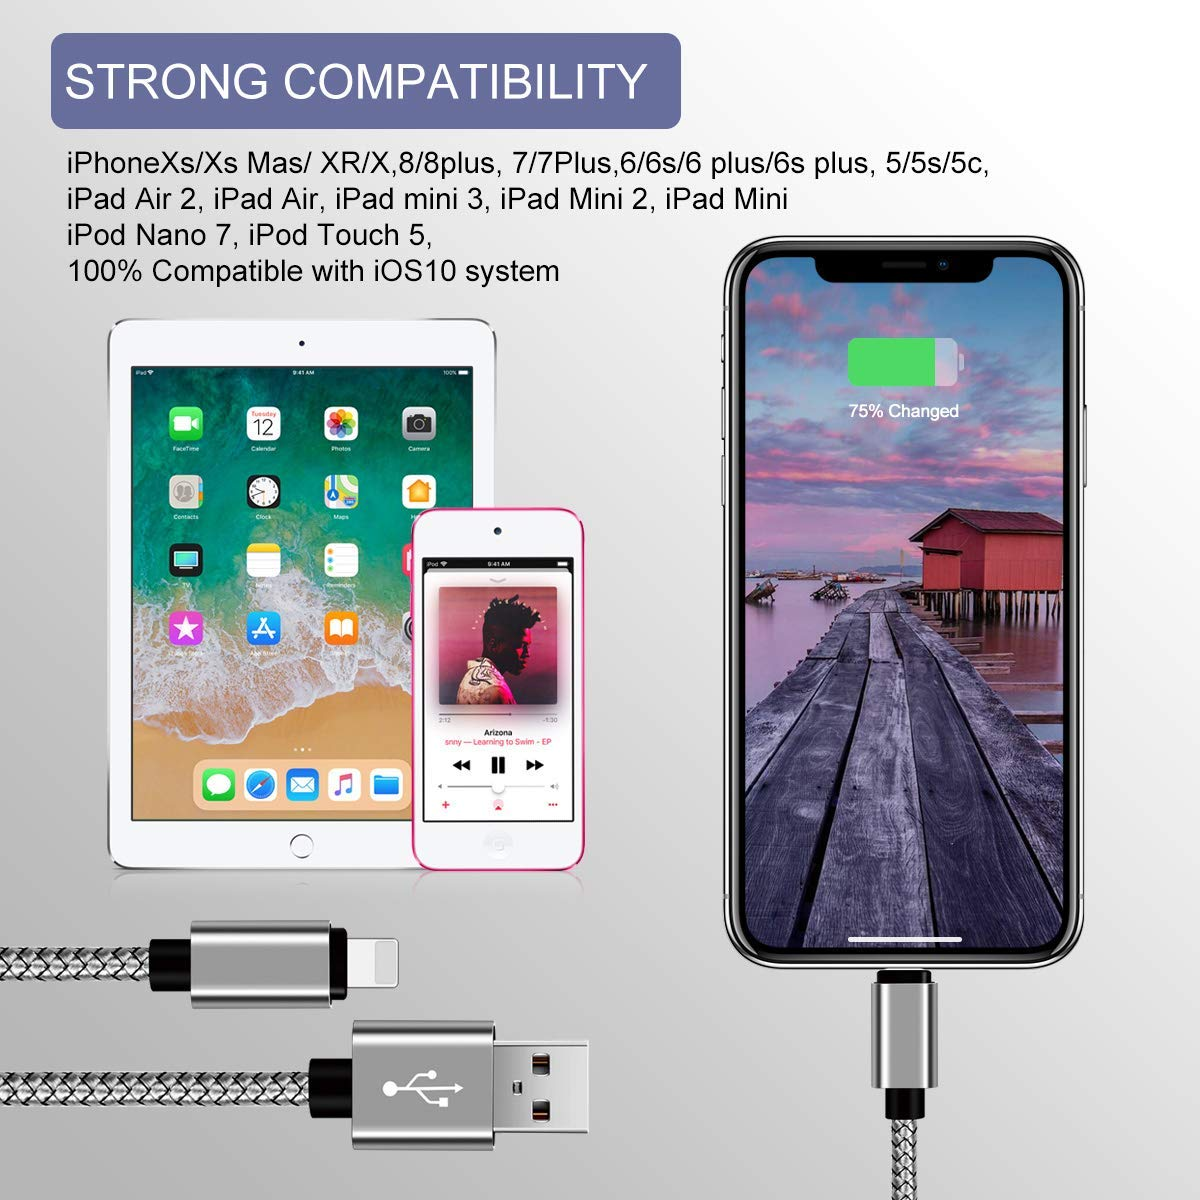 MFi Certified iPhone Charger Lightning Cable 5Pack[3/3/6/6/10FT] Extra Long Nylon Braided USB Charging & Syncing Cord Compatible iPhone ...